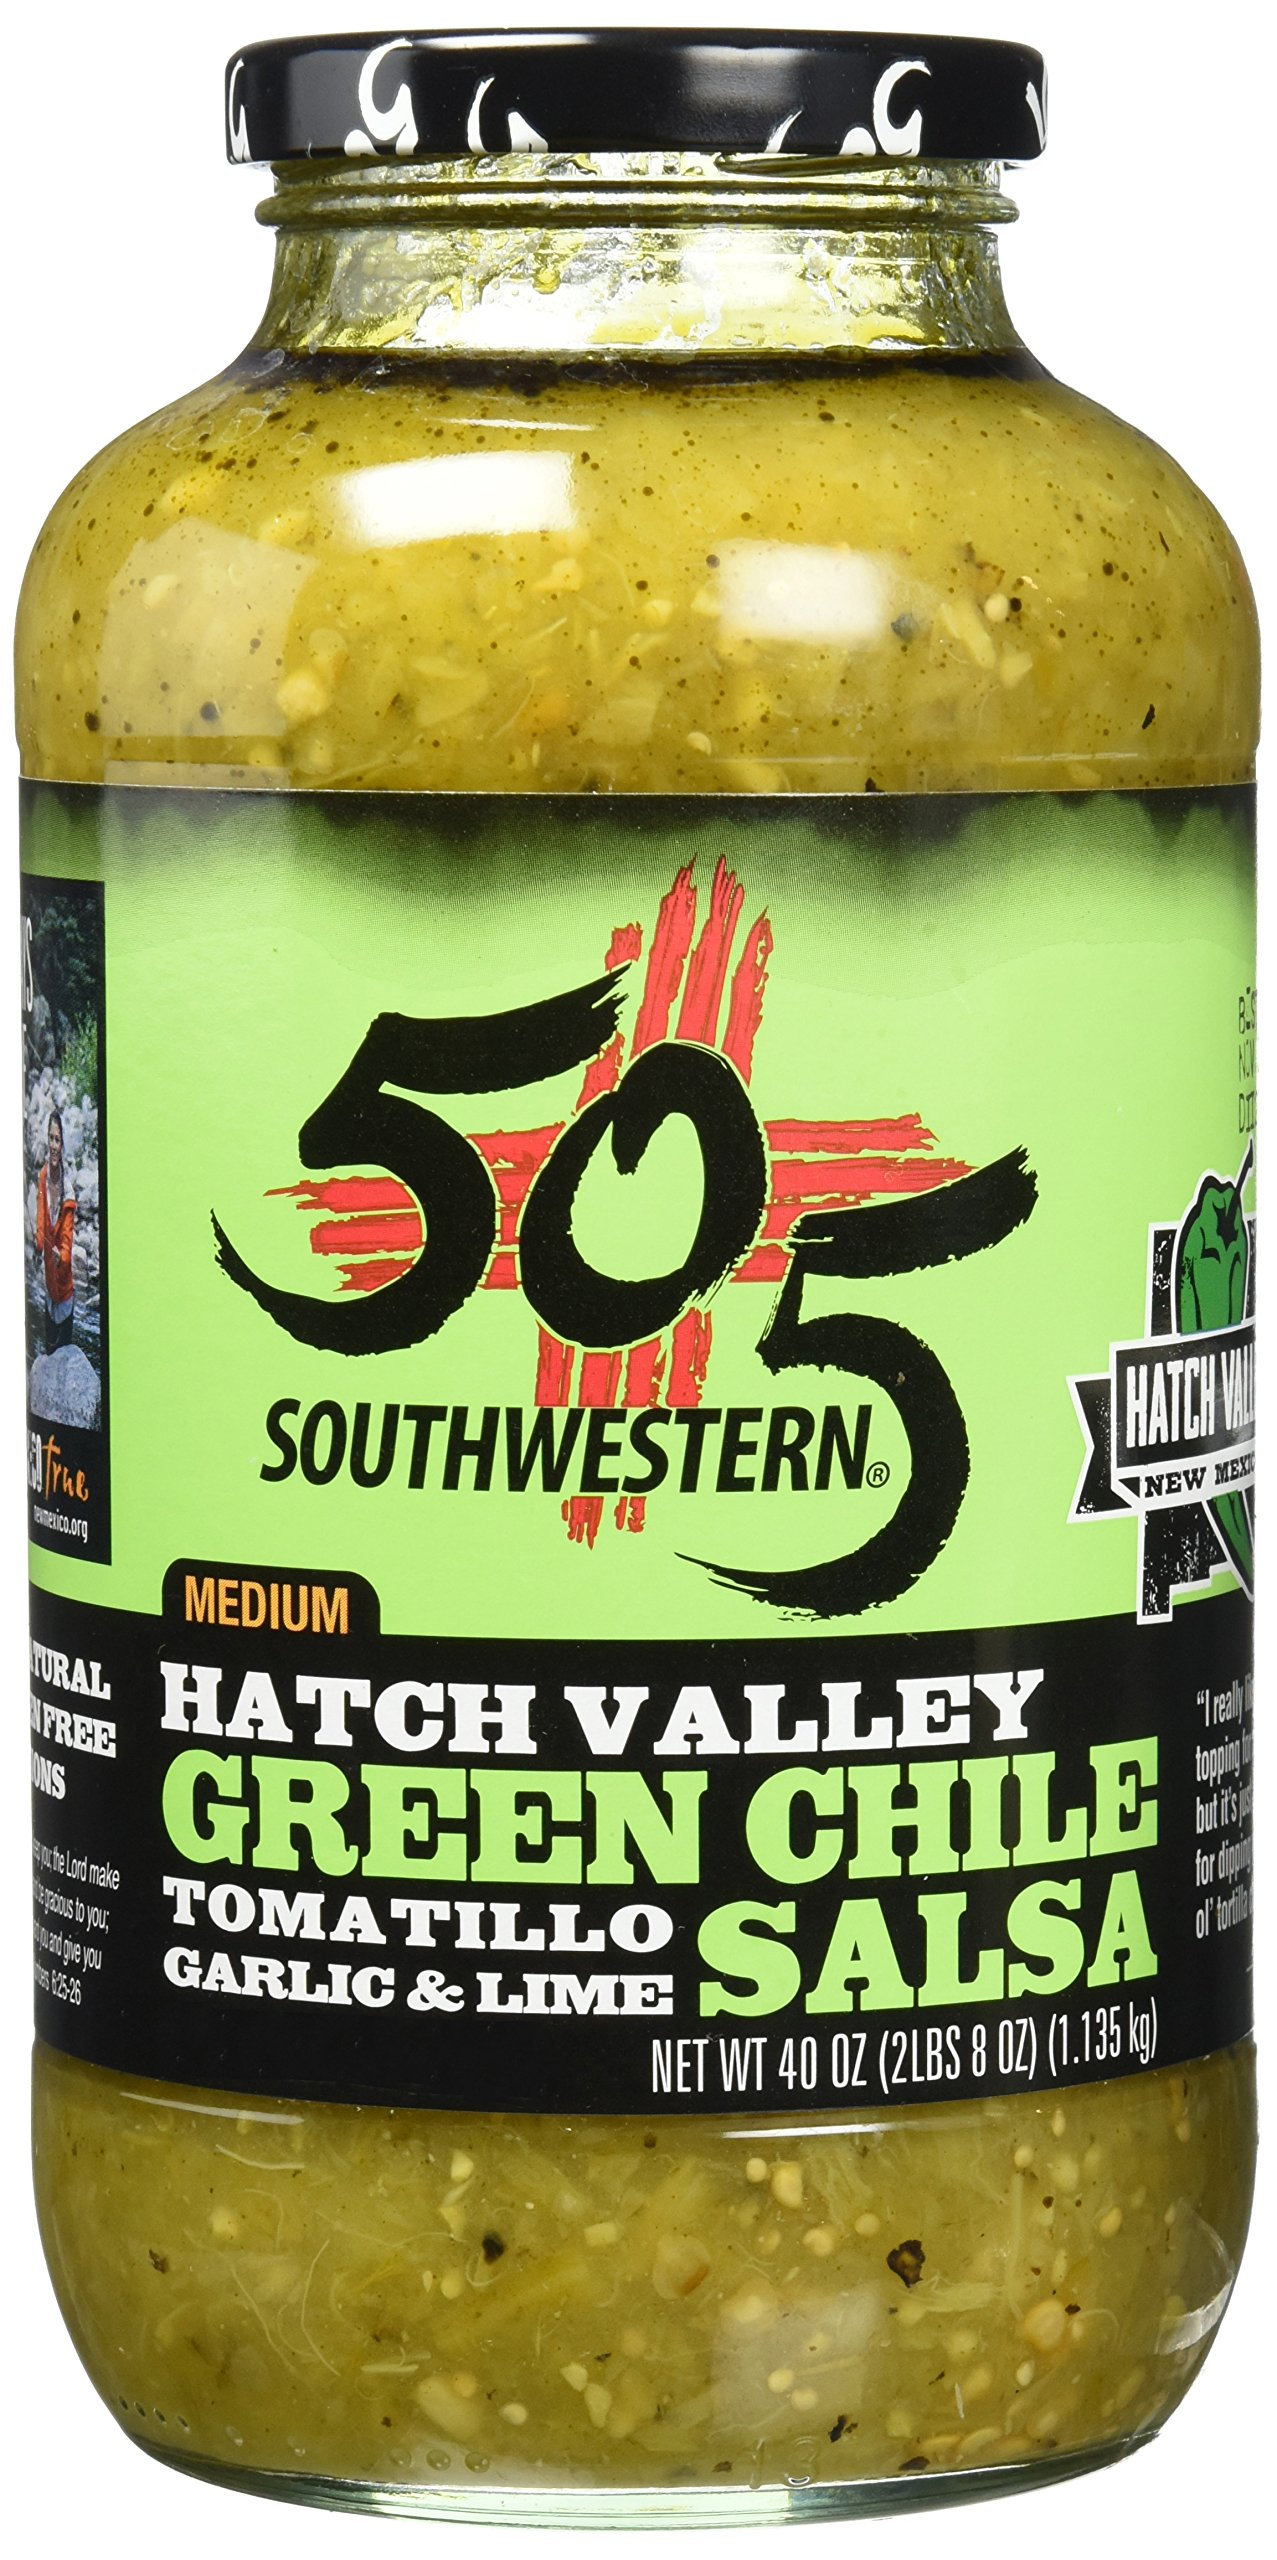 505 Southwestern Hatch Valley Green Chile Salsa 40 Oz